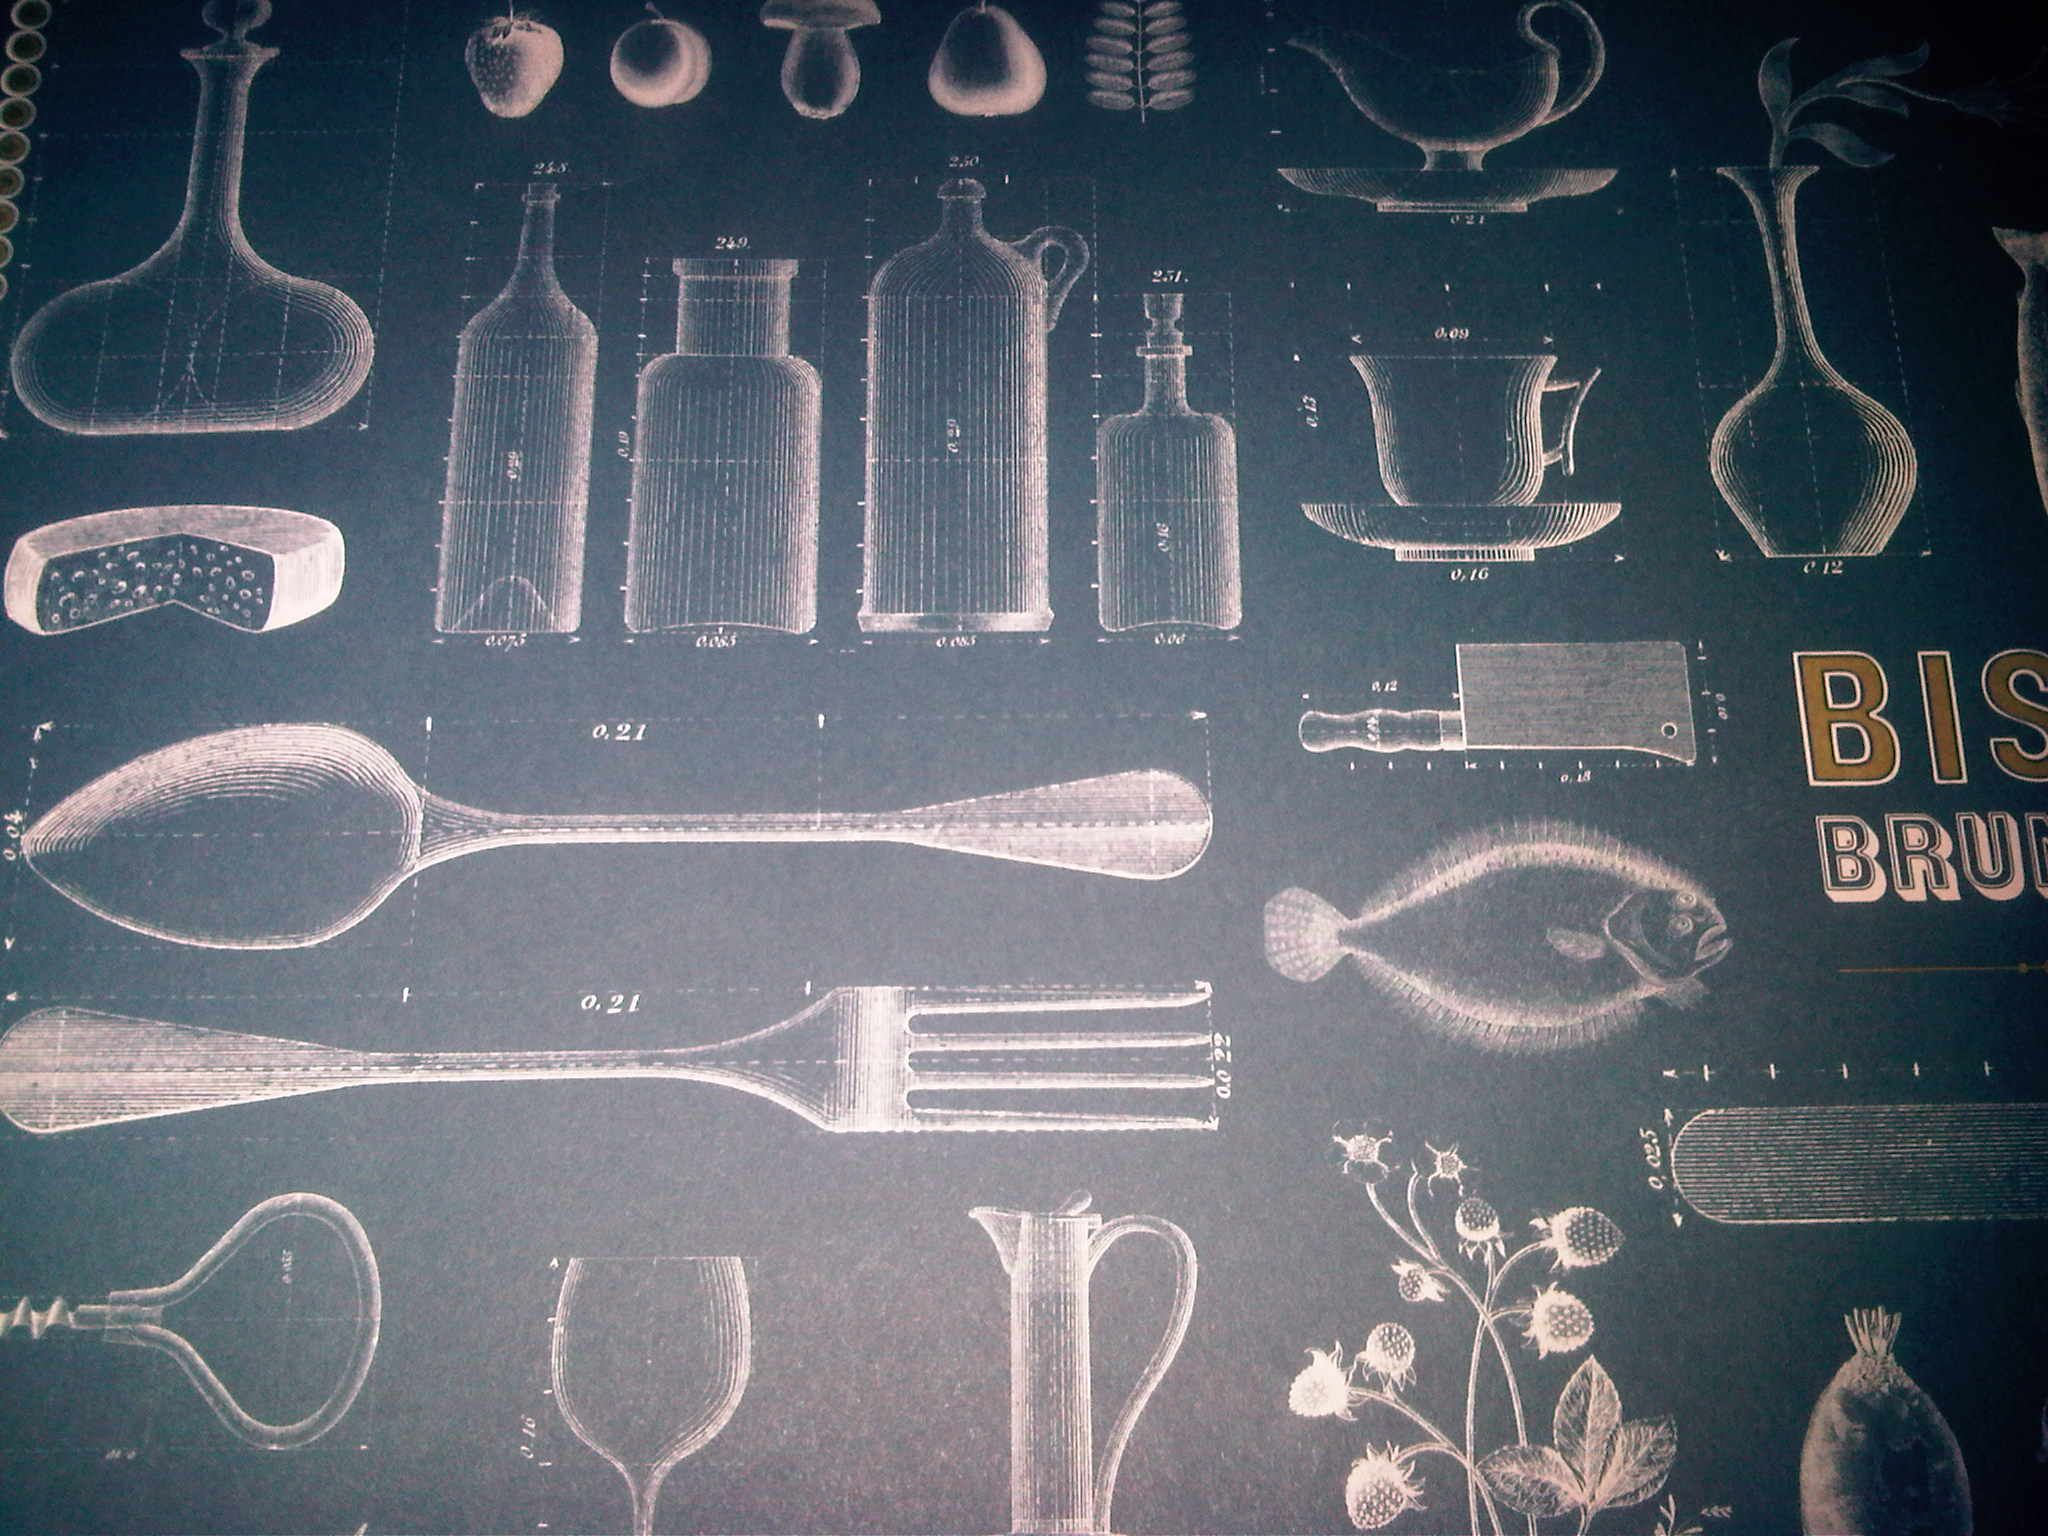 placemat - Zetter's bistrot